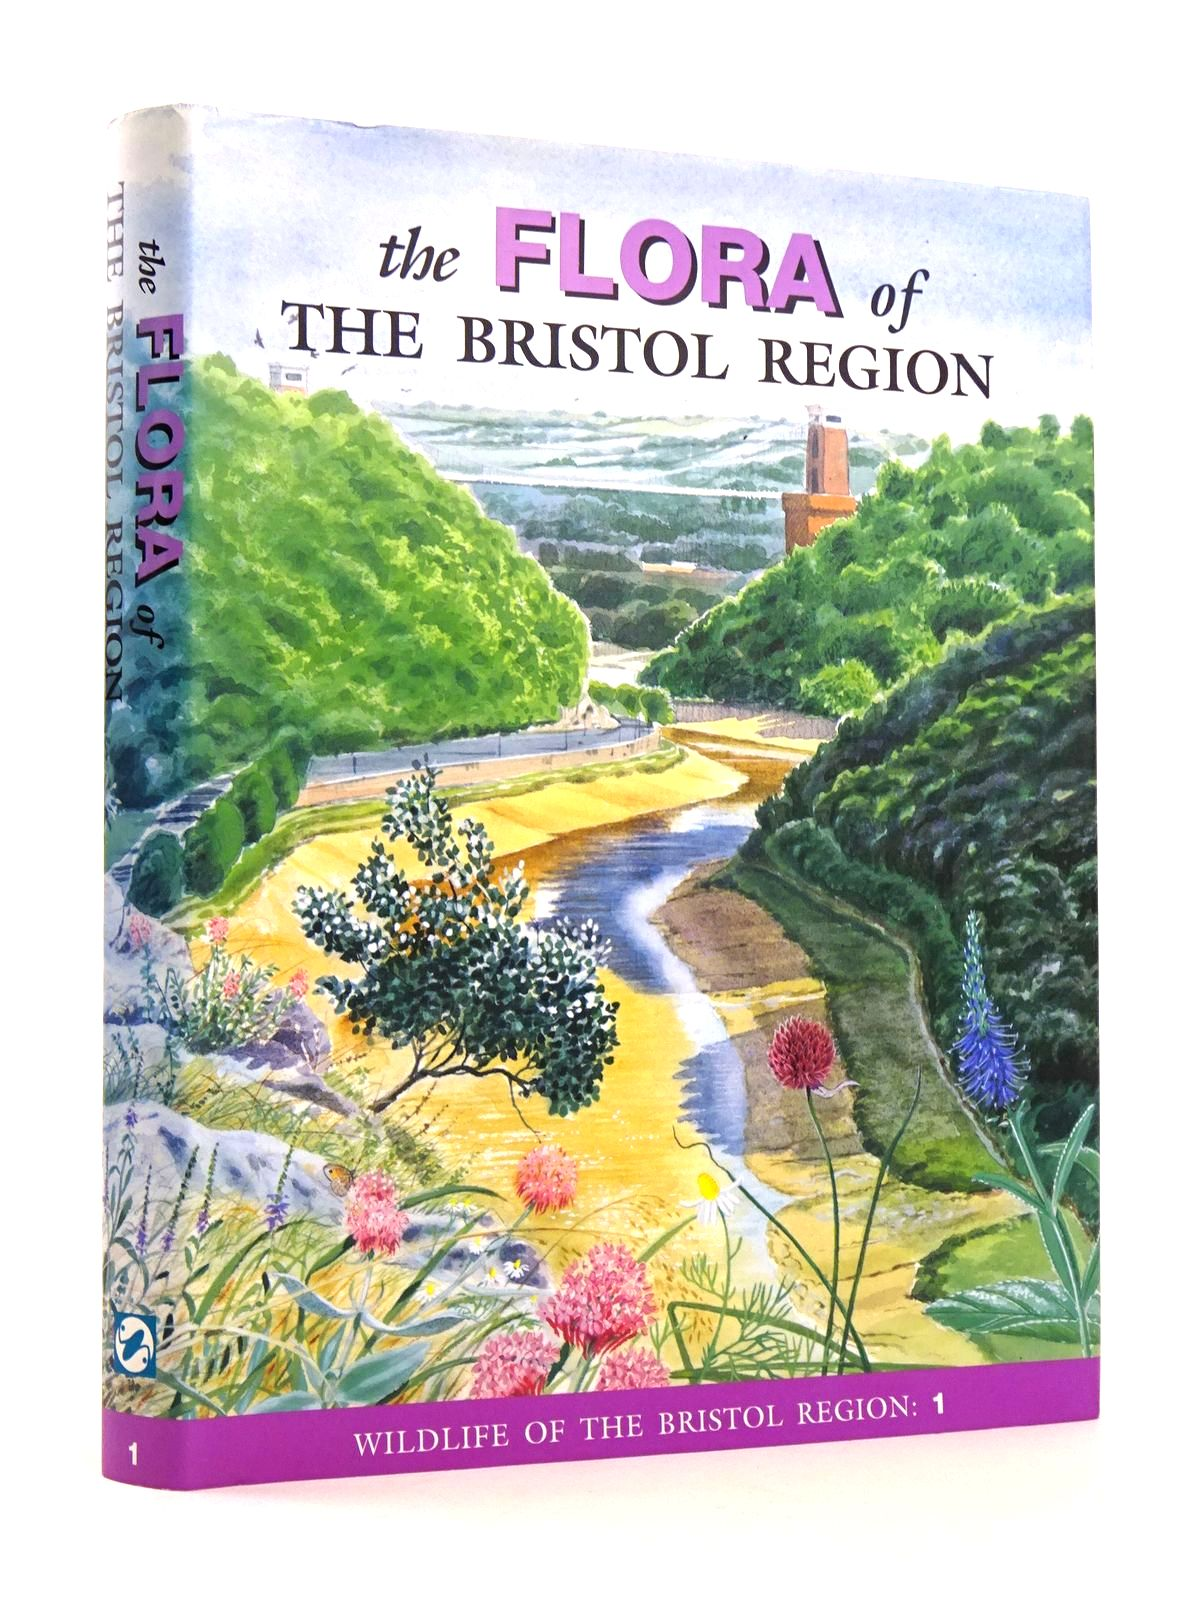 Photo of THE FLORA OF THE BRISTOL REGION written by Green, Ian P. Higgins, Rupert J. Kitchen, Clare Kitchen, Mark A.R. Myles, Sarah L. published by Pisces Publications (STOCK CODE: 1818279)  for sale by Stella & Rose's Books